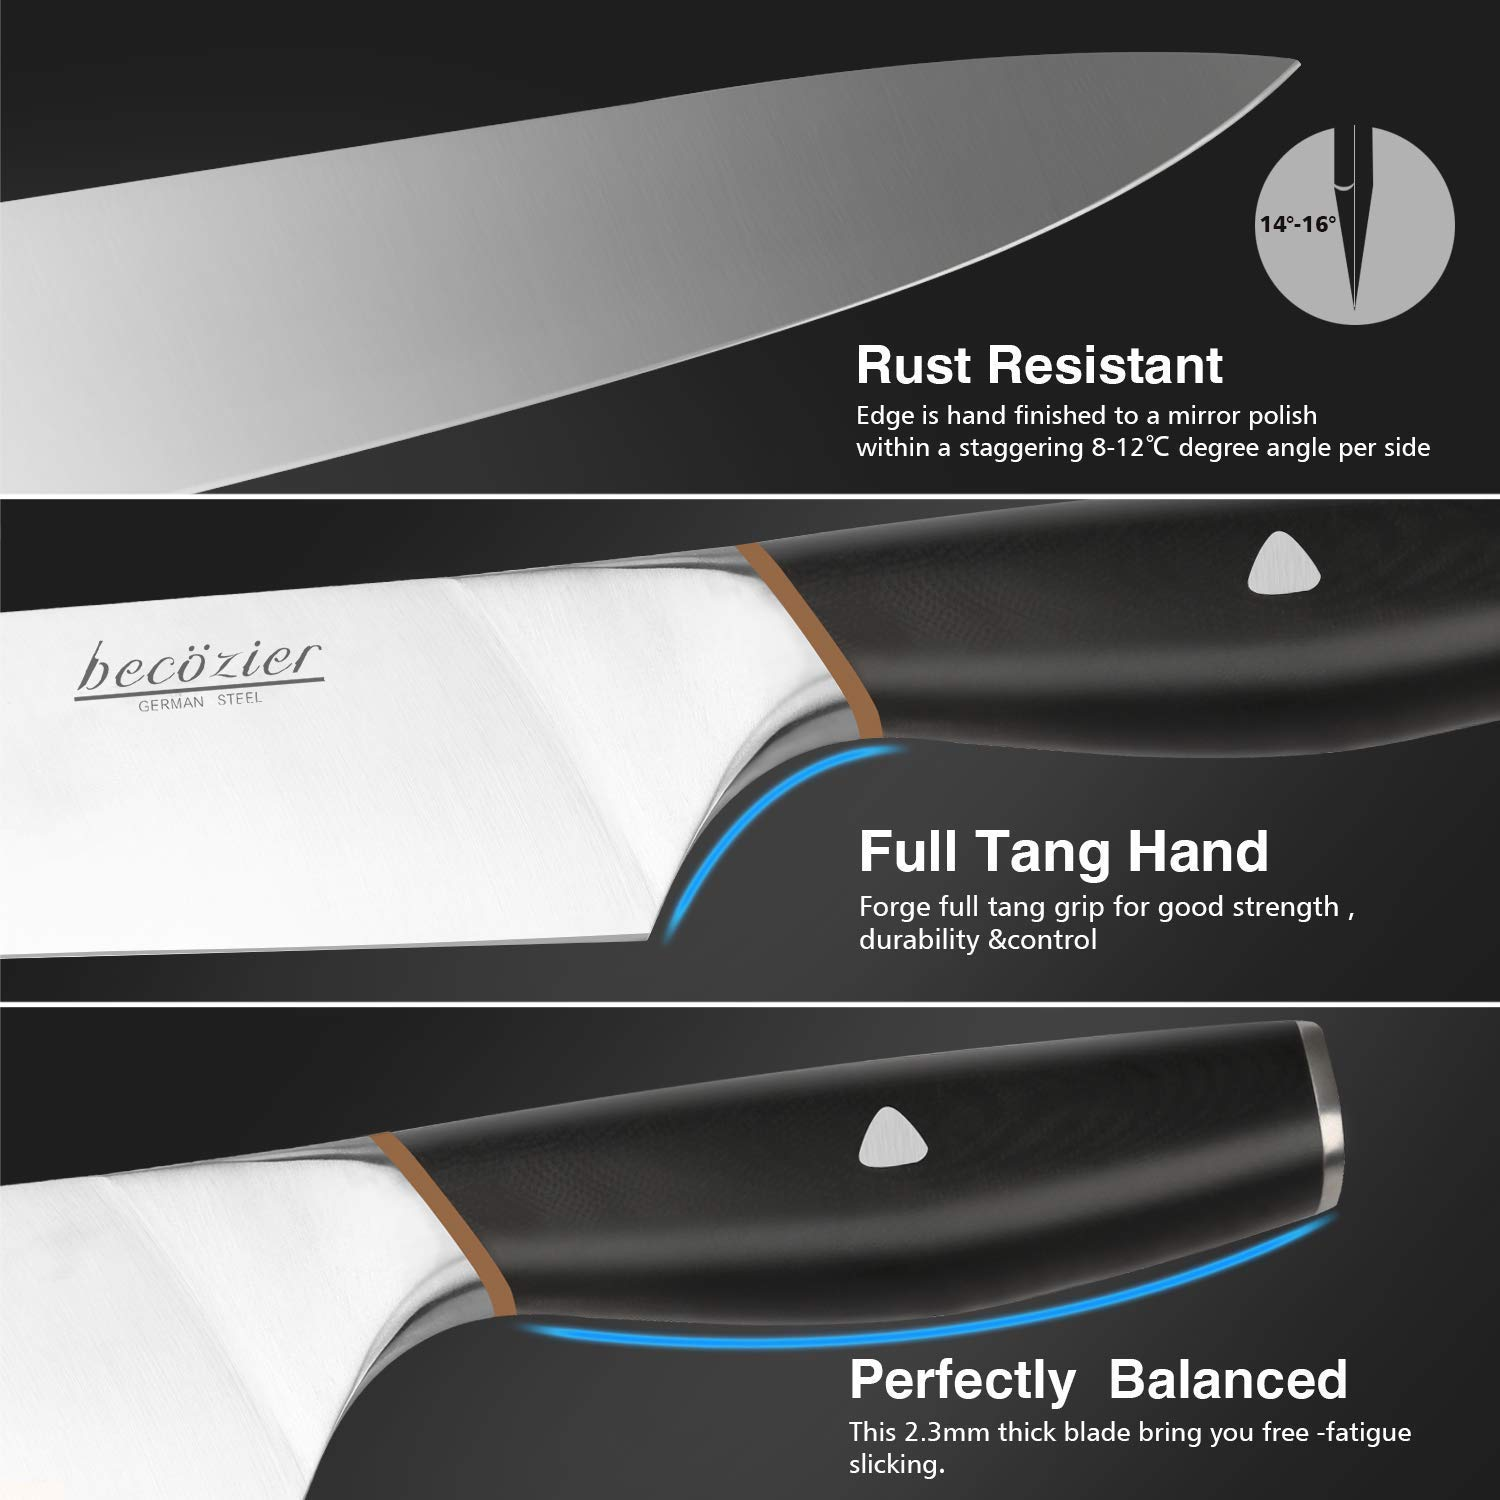 Becozier chef knife,8 inch professional kitchen knife,German High Carbon steel stainless steel with G10 handle sharp Edge,Ergonomic Grip by Becozier (Image #2)